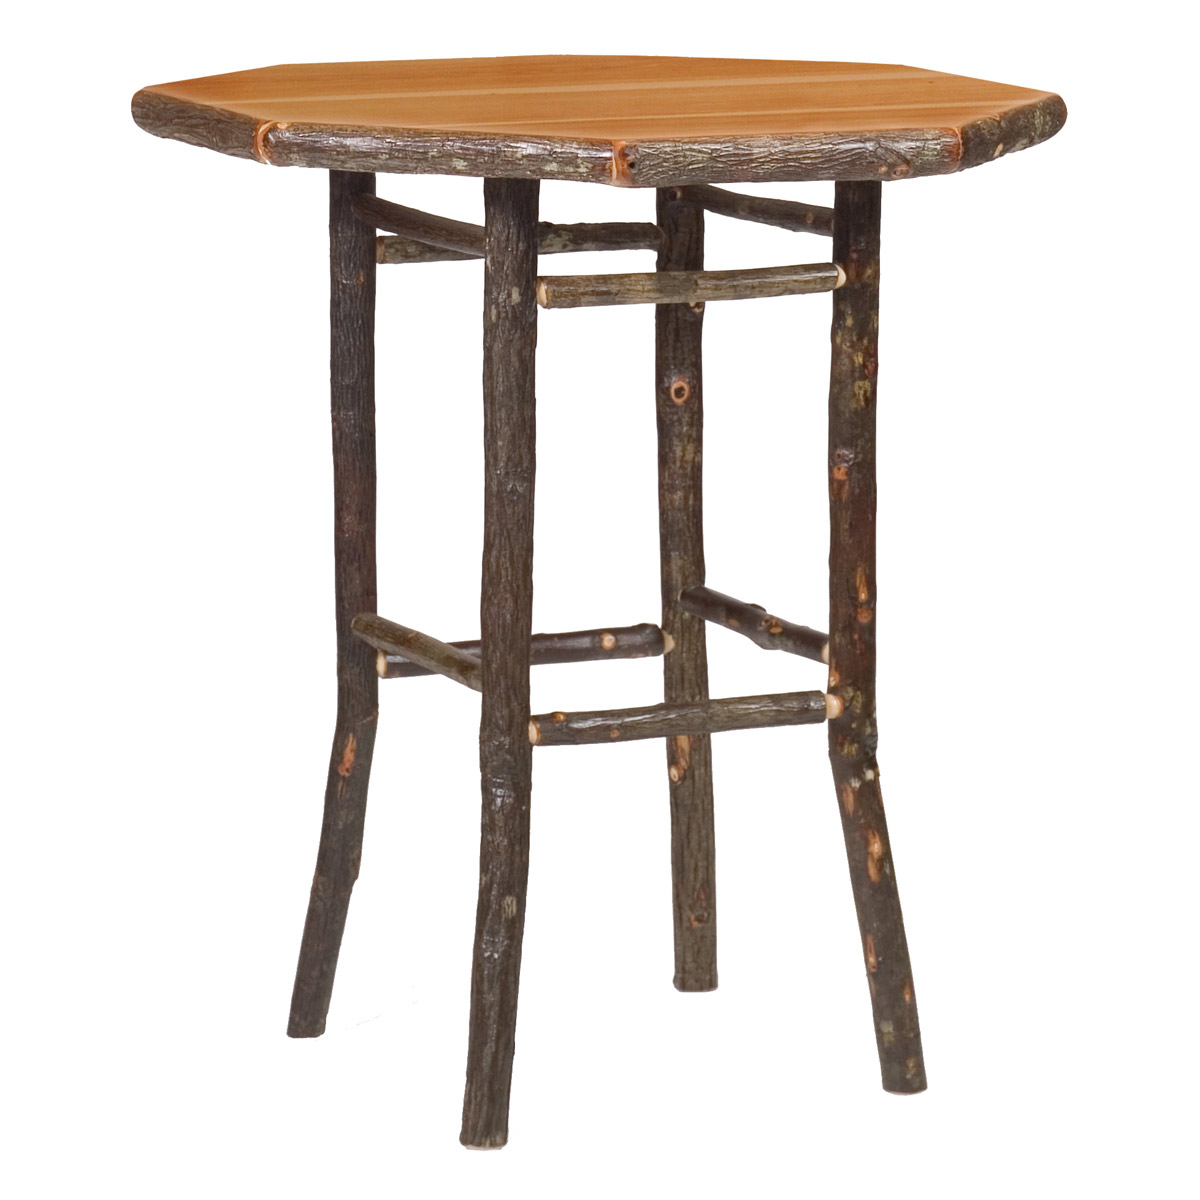 Black Forest Decor Hickory round pub table - 36 inch